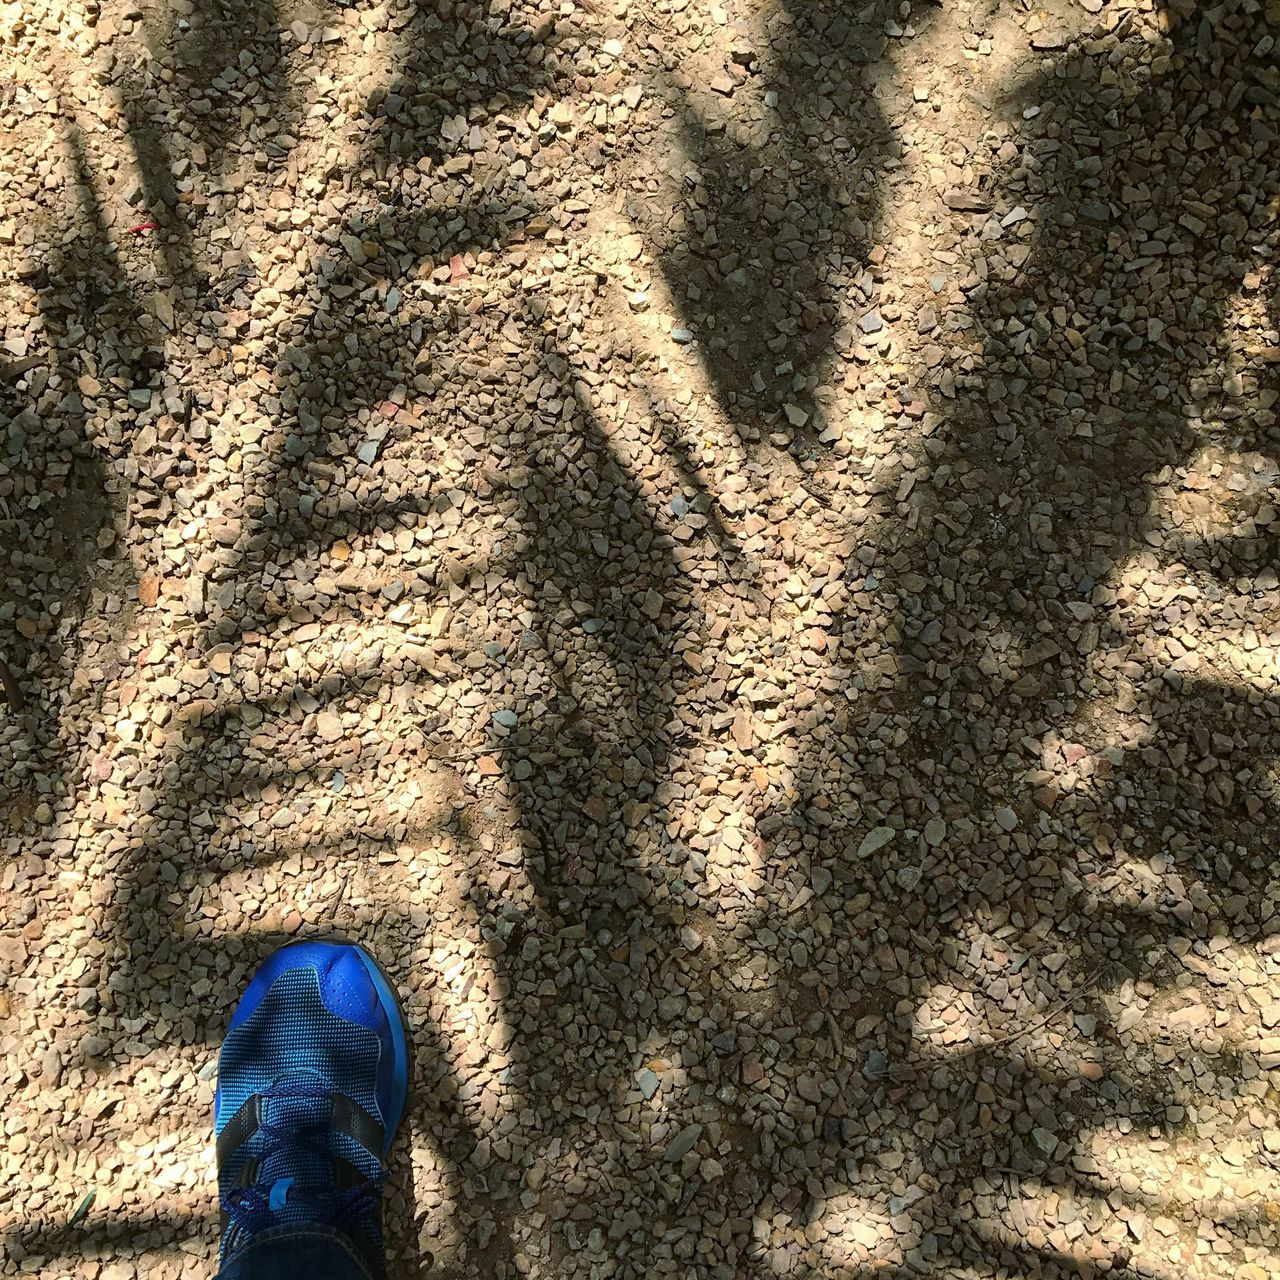 Shadow High Angle View Sunlight Low Section Shoe Human Leg Day Real People Standing Outdoors Men One Person Human Body Part Lifestyles Adult People Out Of The Box Open Edit Adidas Electric Blue Sneakers